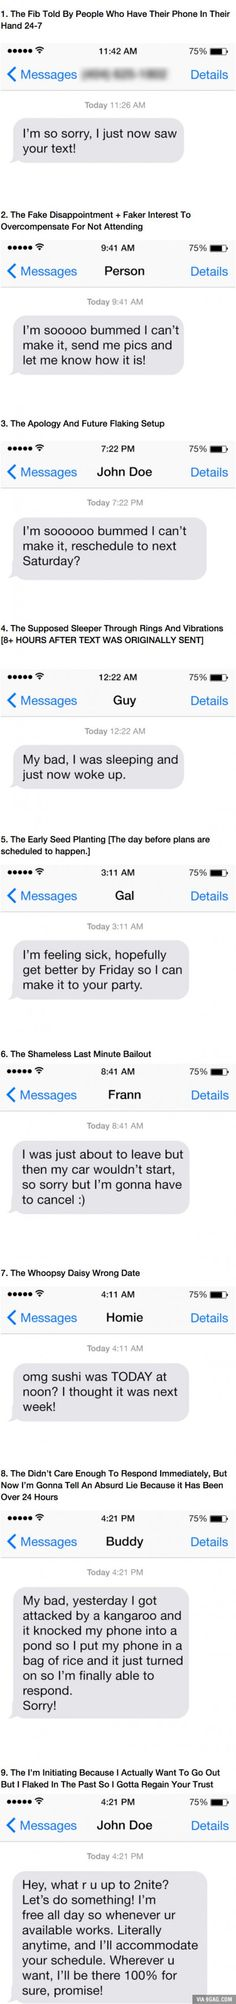 9 Classic Texts Every Lying Ass Flake Has Sent At Some Point